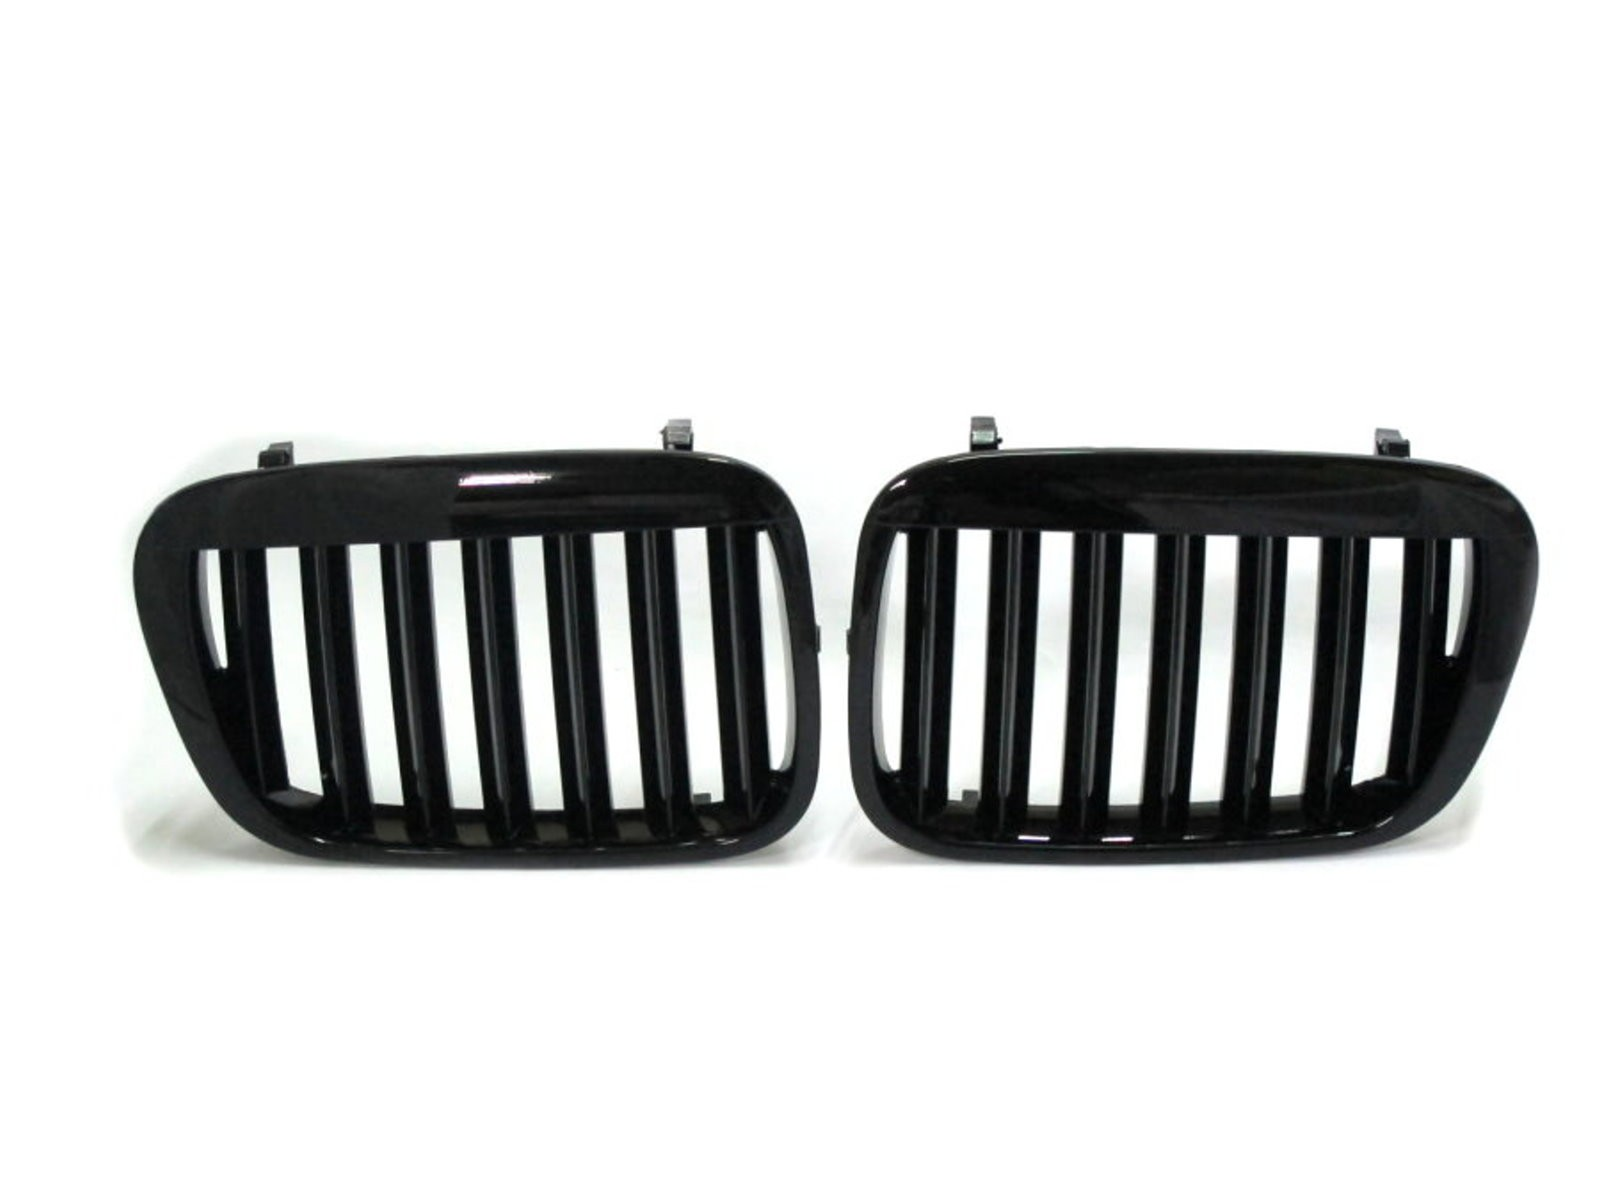 CrazyTheGod 3-Series E46 1998-2001 PRE-FACELIFT Sedan/Wagon 4D/5D X5LOOK GRILLE/GRILL Gloss Black for BMW